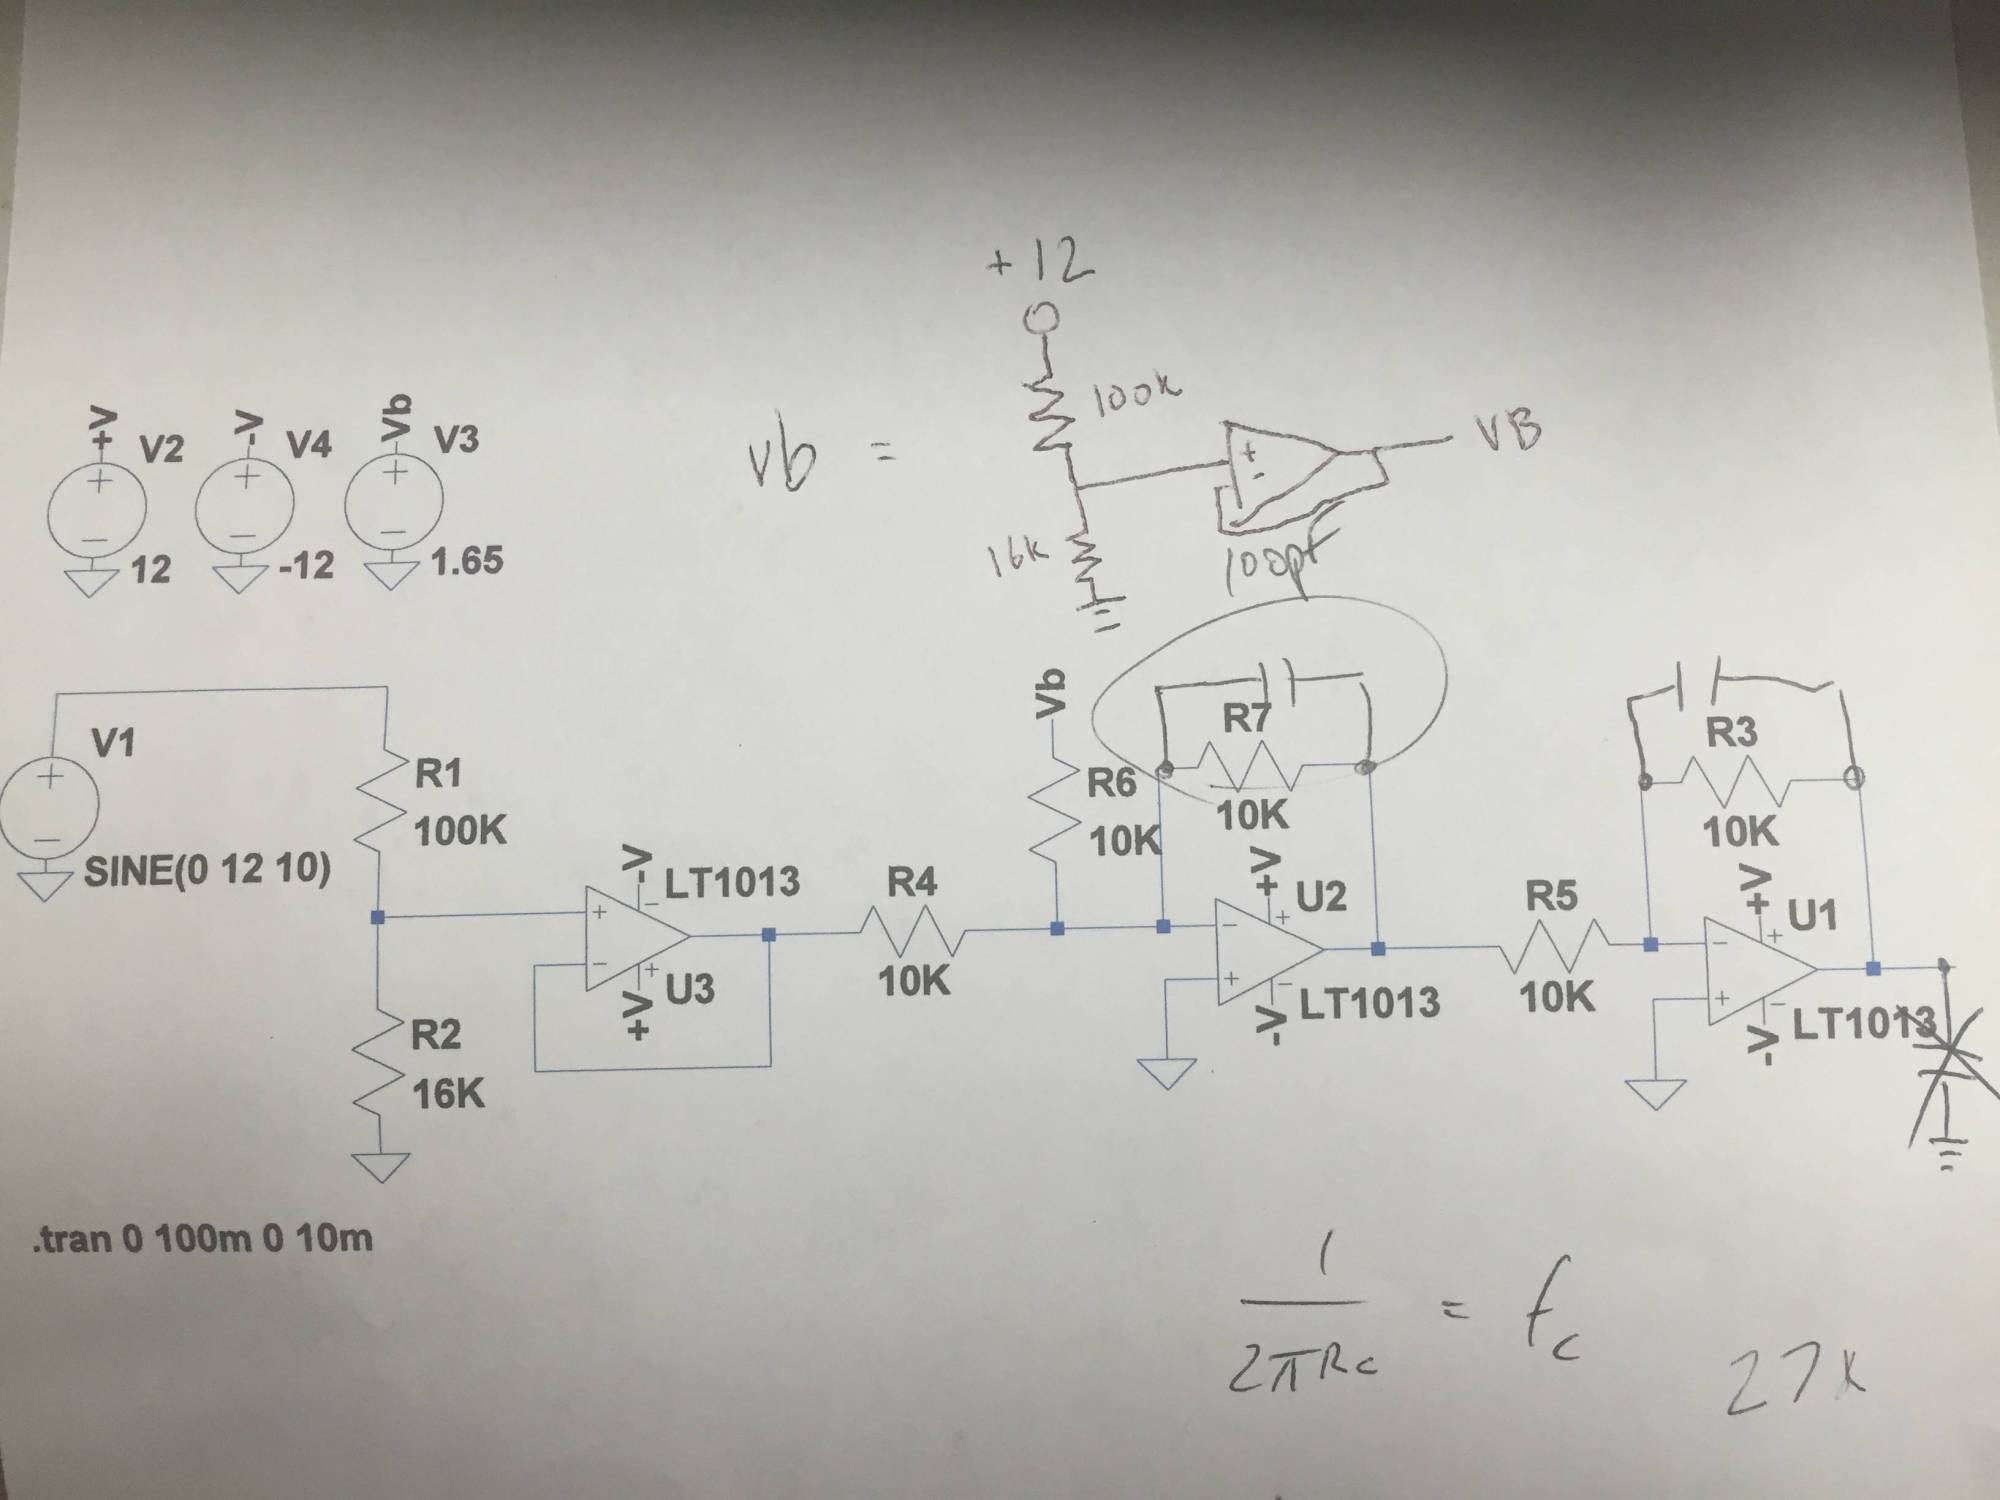 hight resolution of it says lt103 on the schematic i am using the lm324 a quad opamp